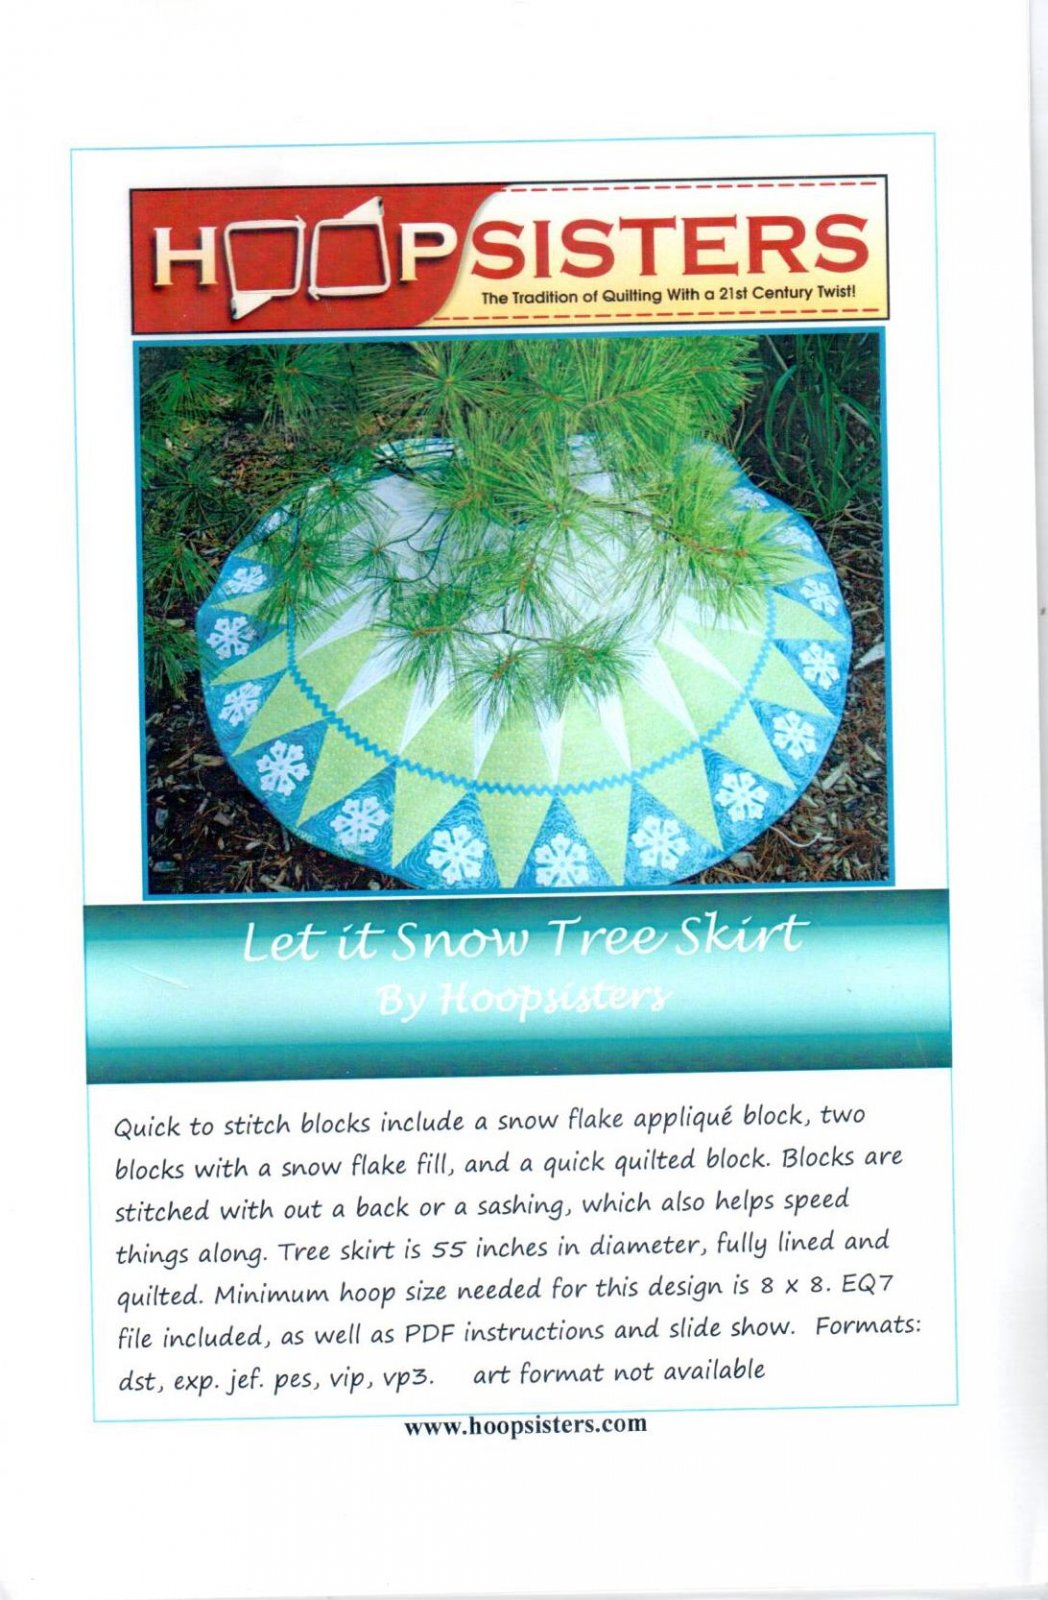 Let It Snow Tree Skirt by Hoopsisters